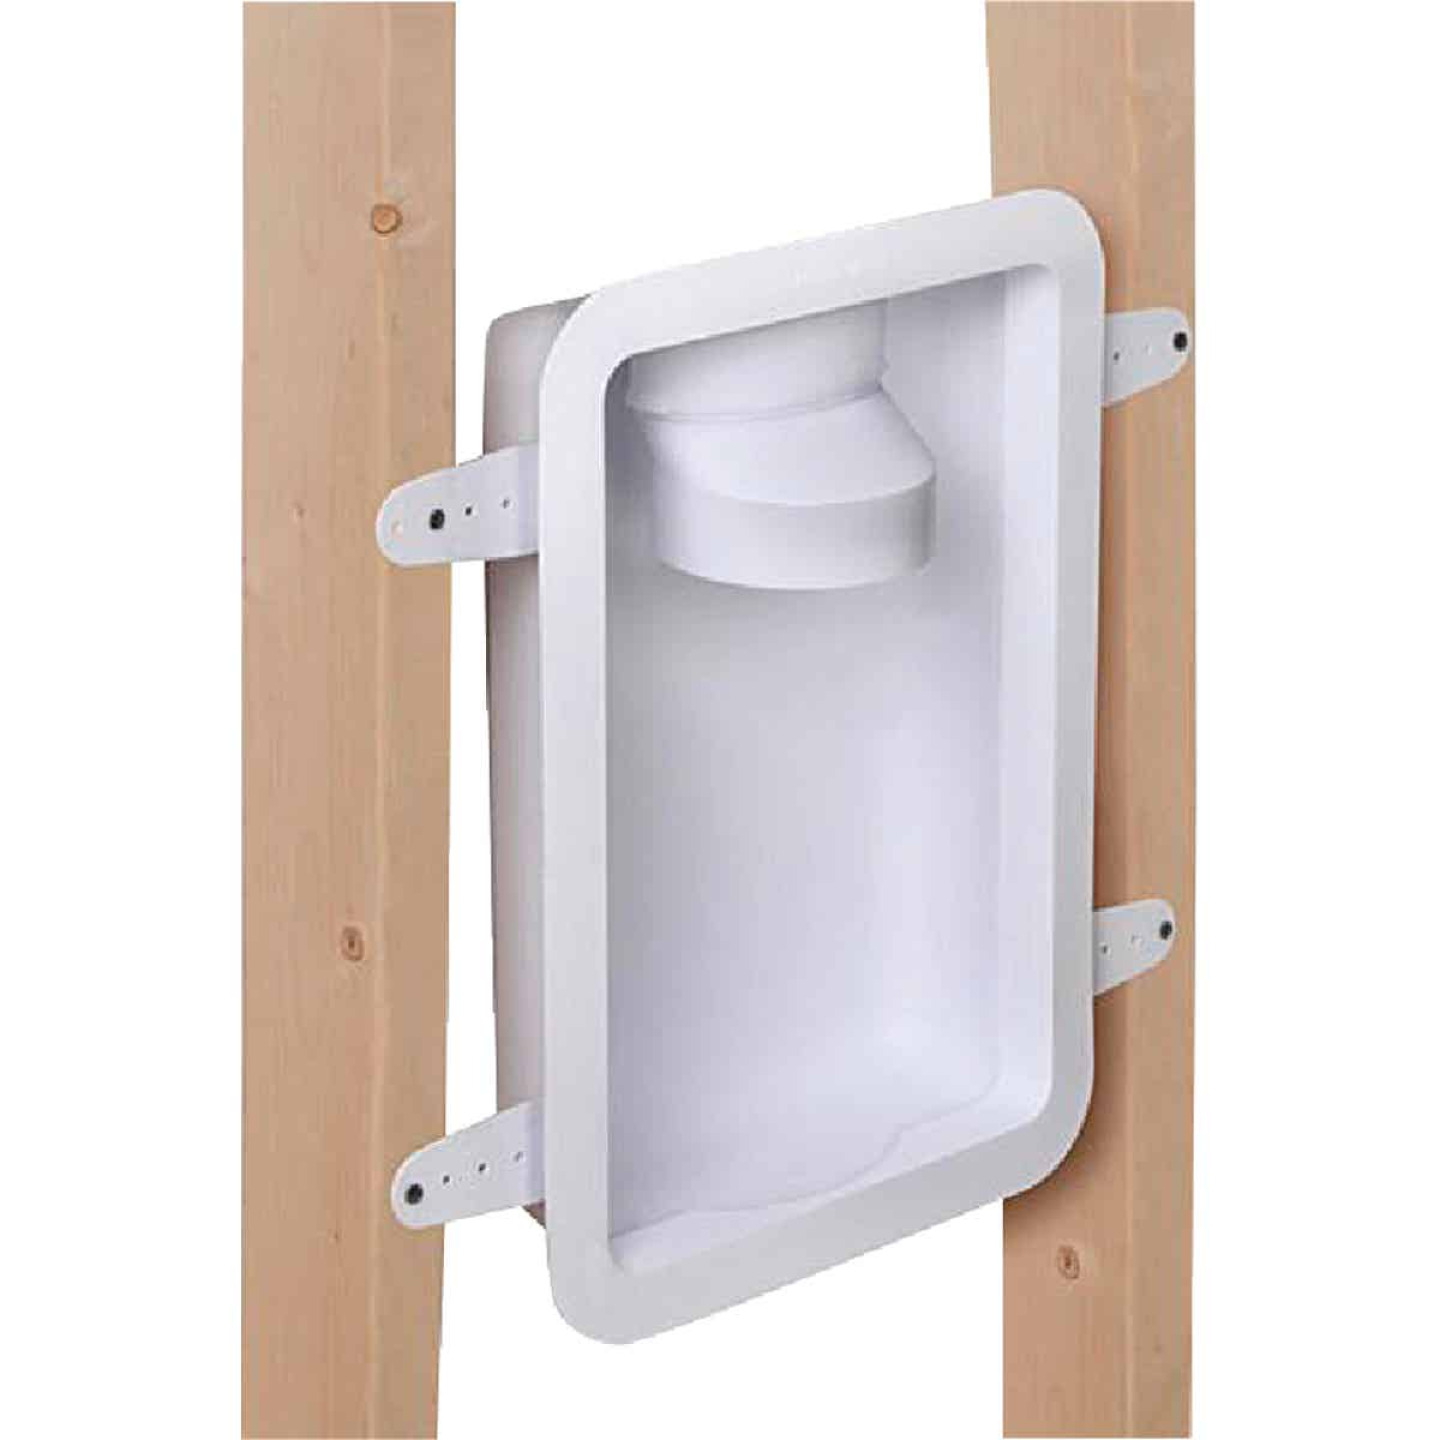 Dundas Jafine 12.05 In. W. x 17.5 In. L. x 3.45 In. D. White Dryer Wall Box Image 1